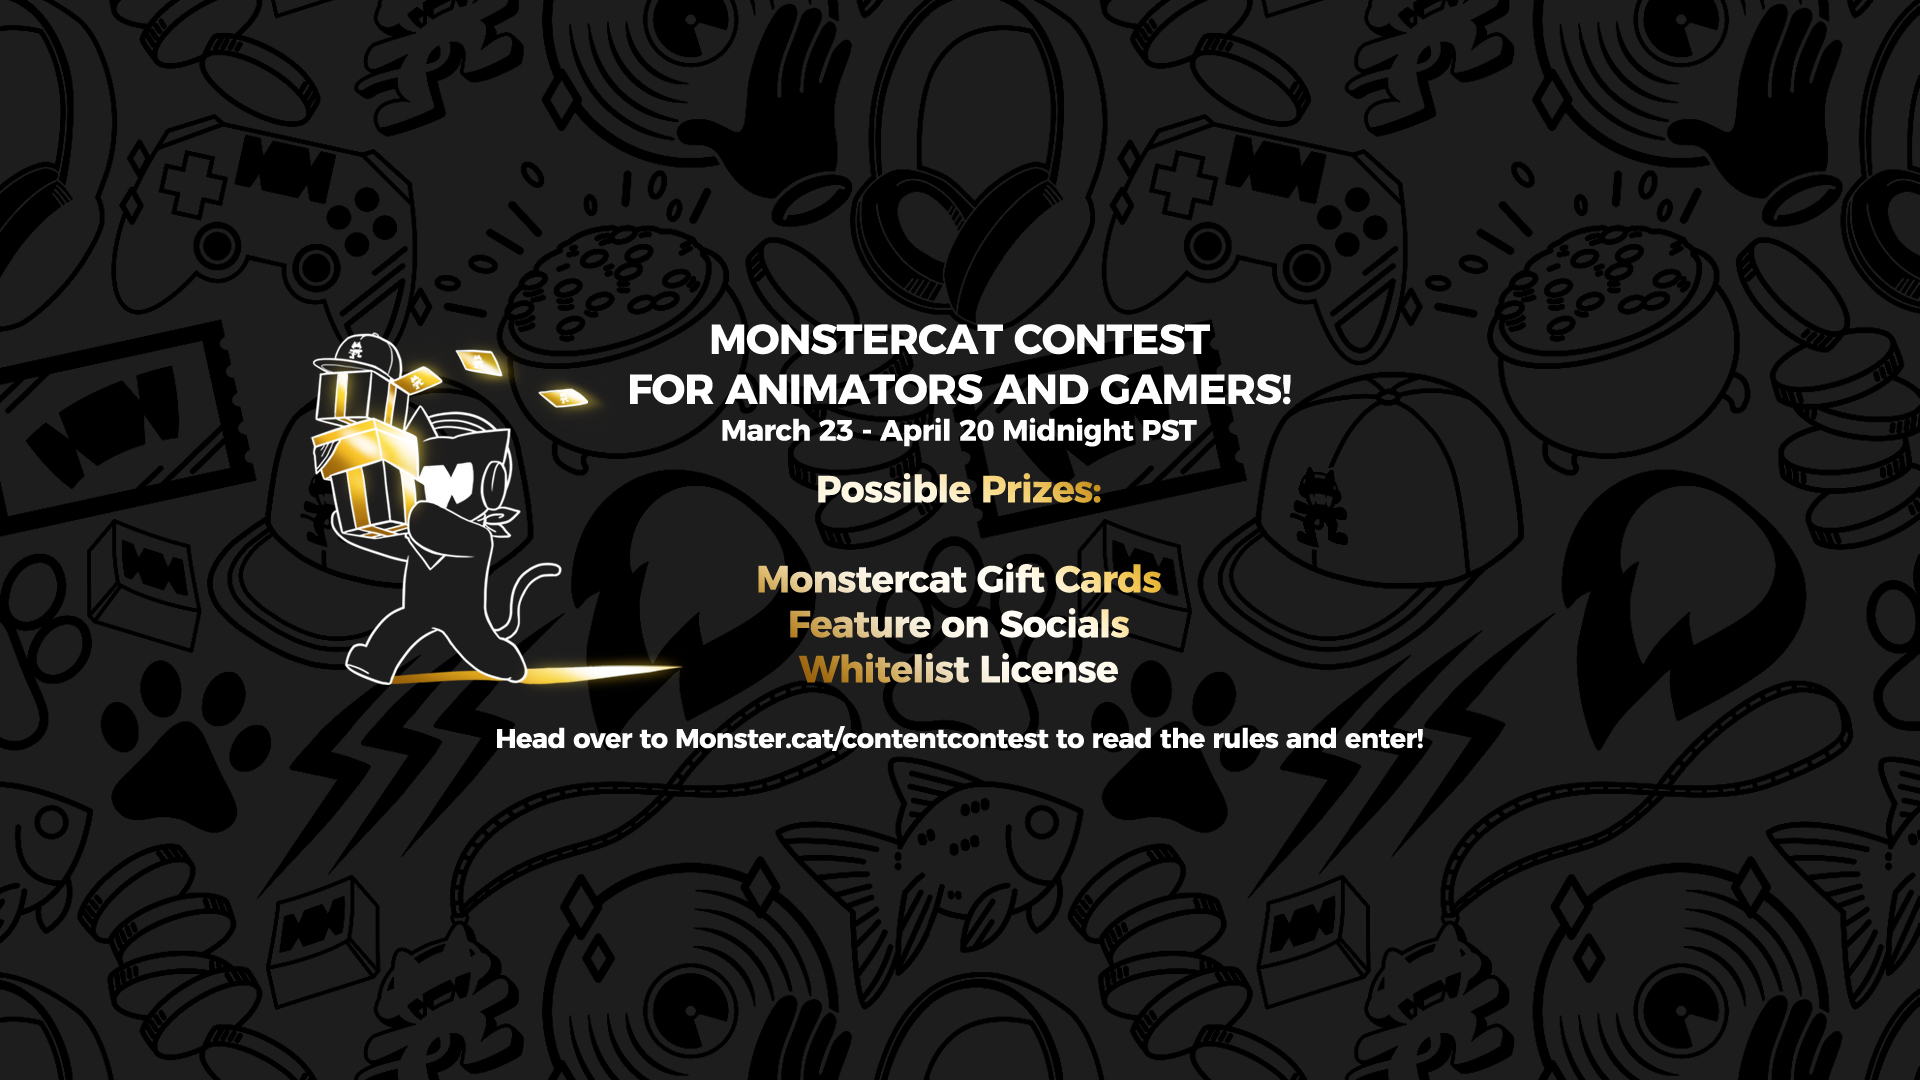 Monstercat Content Contest for Animators and Gamers - Blog